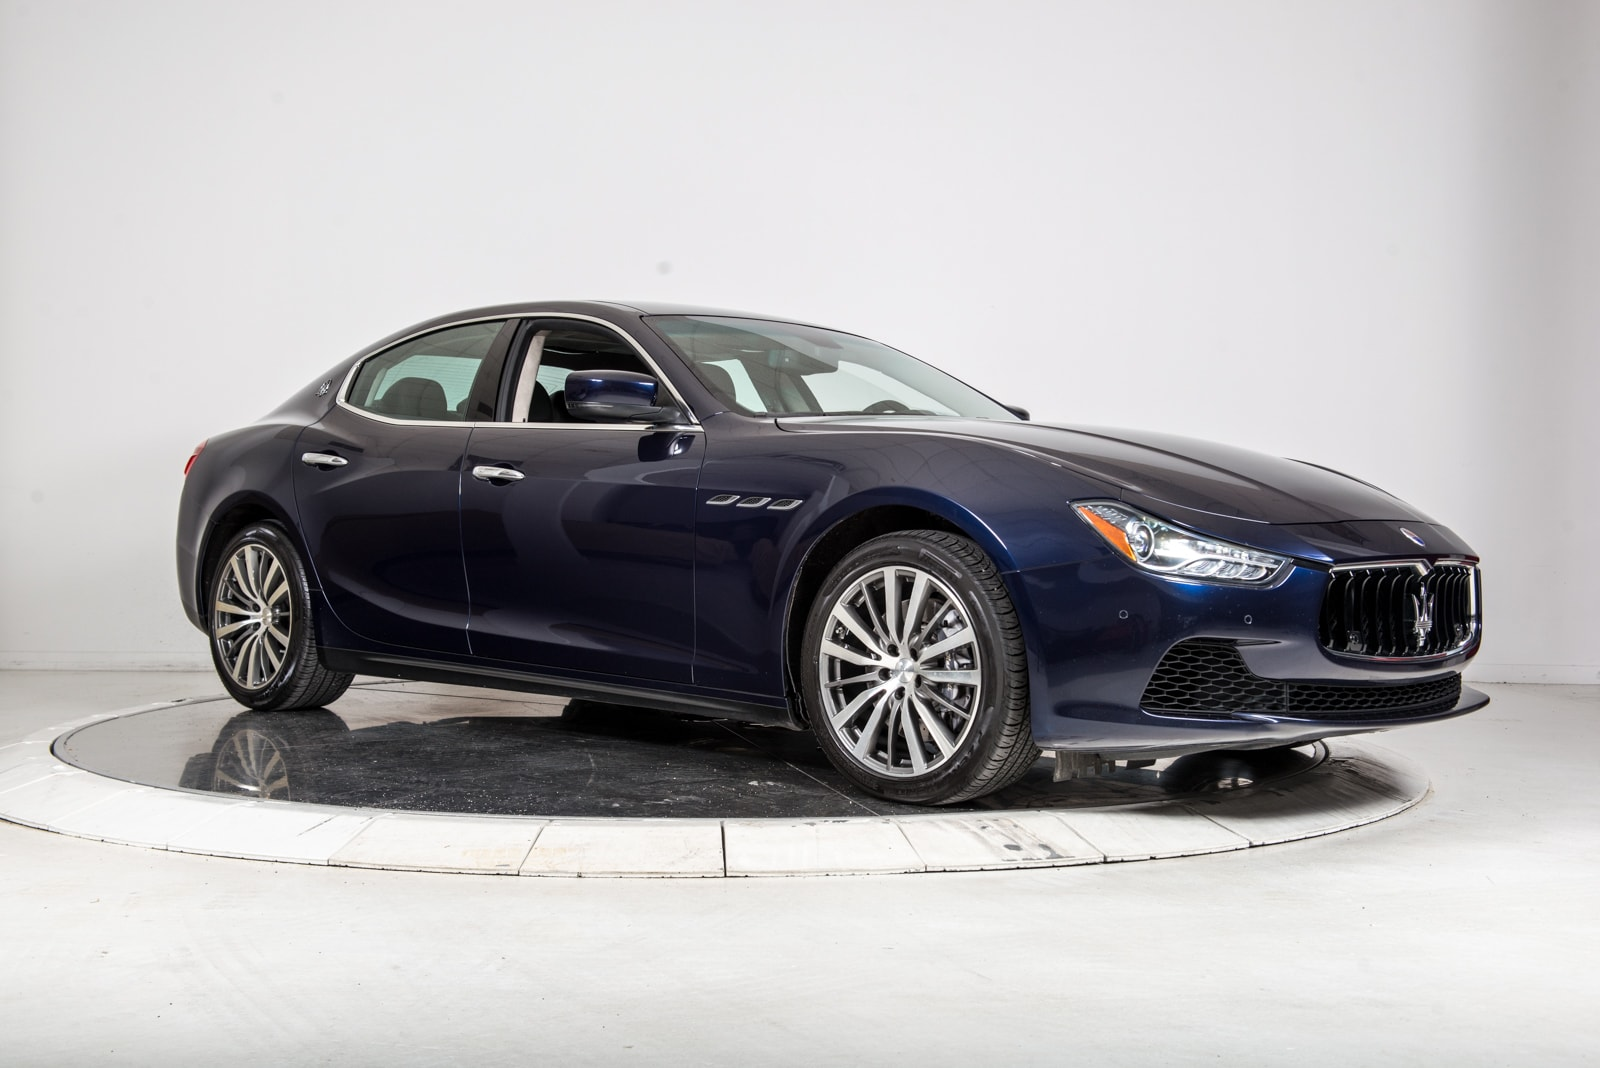 used 2015 maserati ghibli s q4 for sale plainview near long island ny vin zam57rta7f1131810. Black Bedroom Furniture Sets. Home Design Ideas